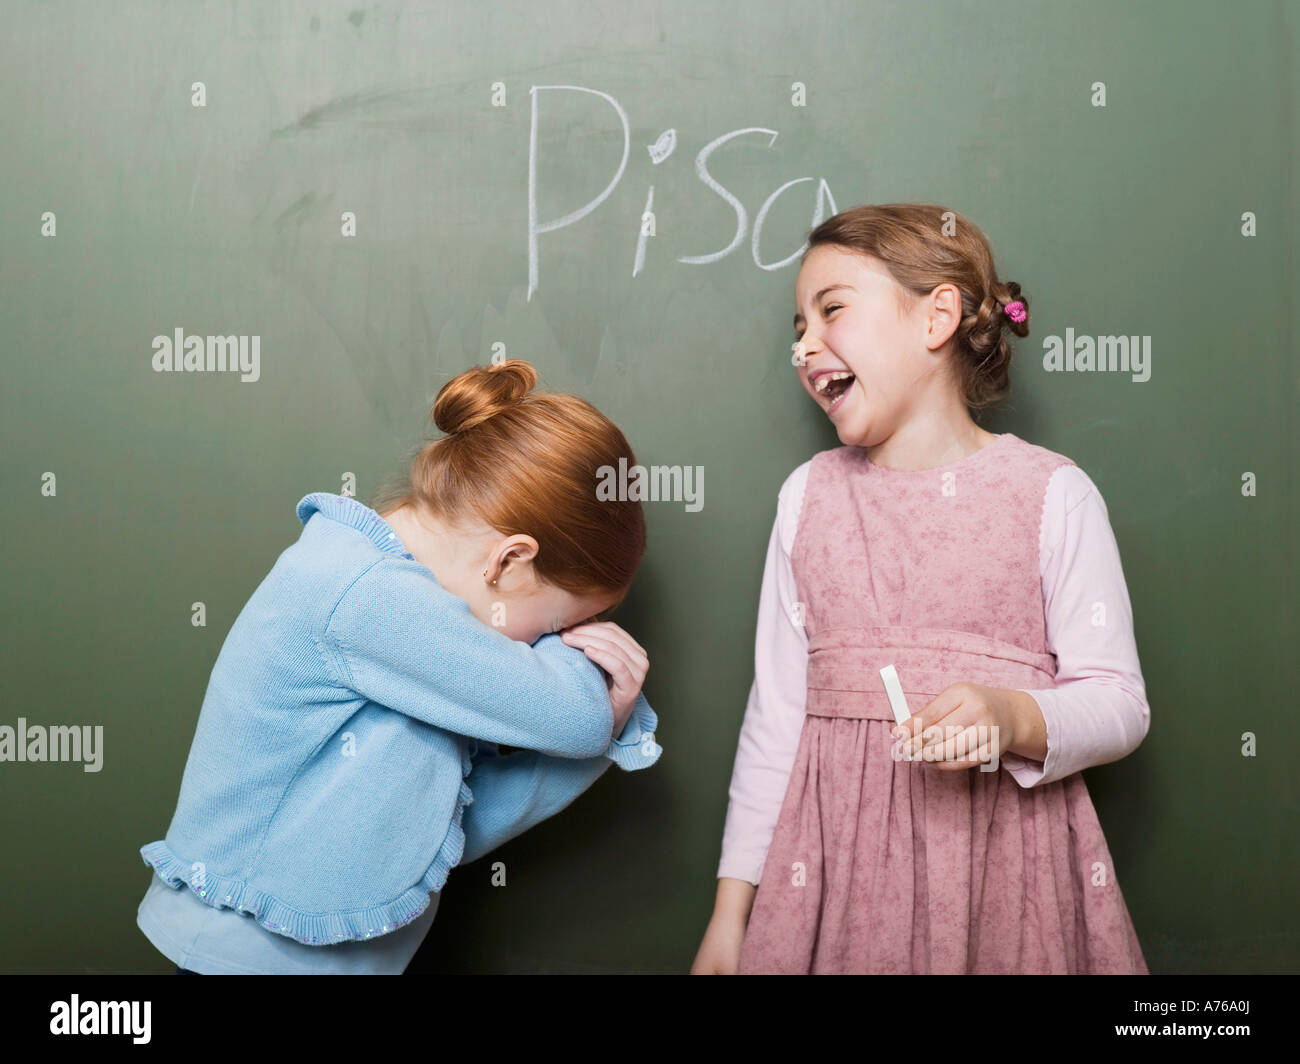 Girls (4-7) standing in front of blackboard, laughing - Stock Image